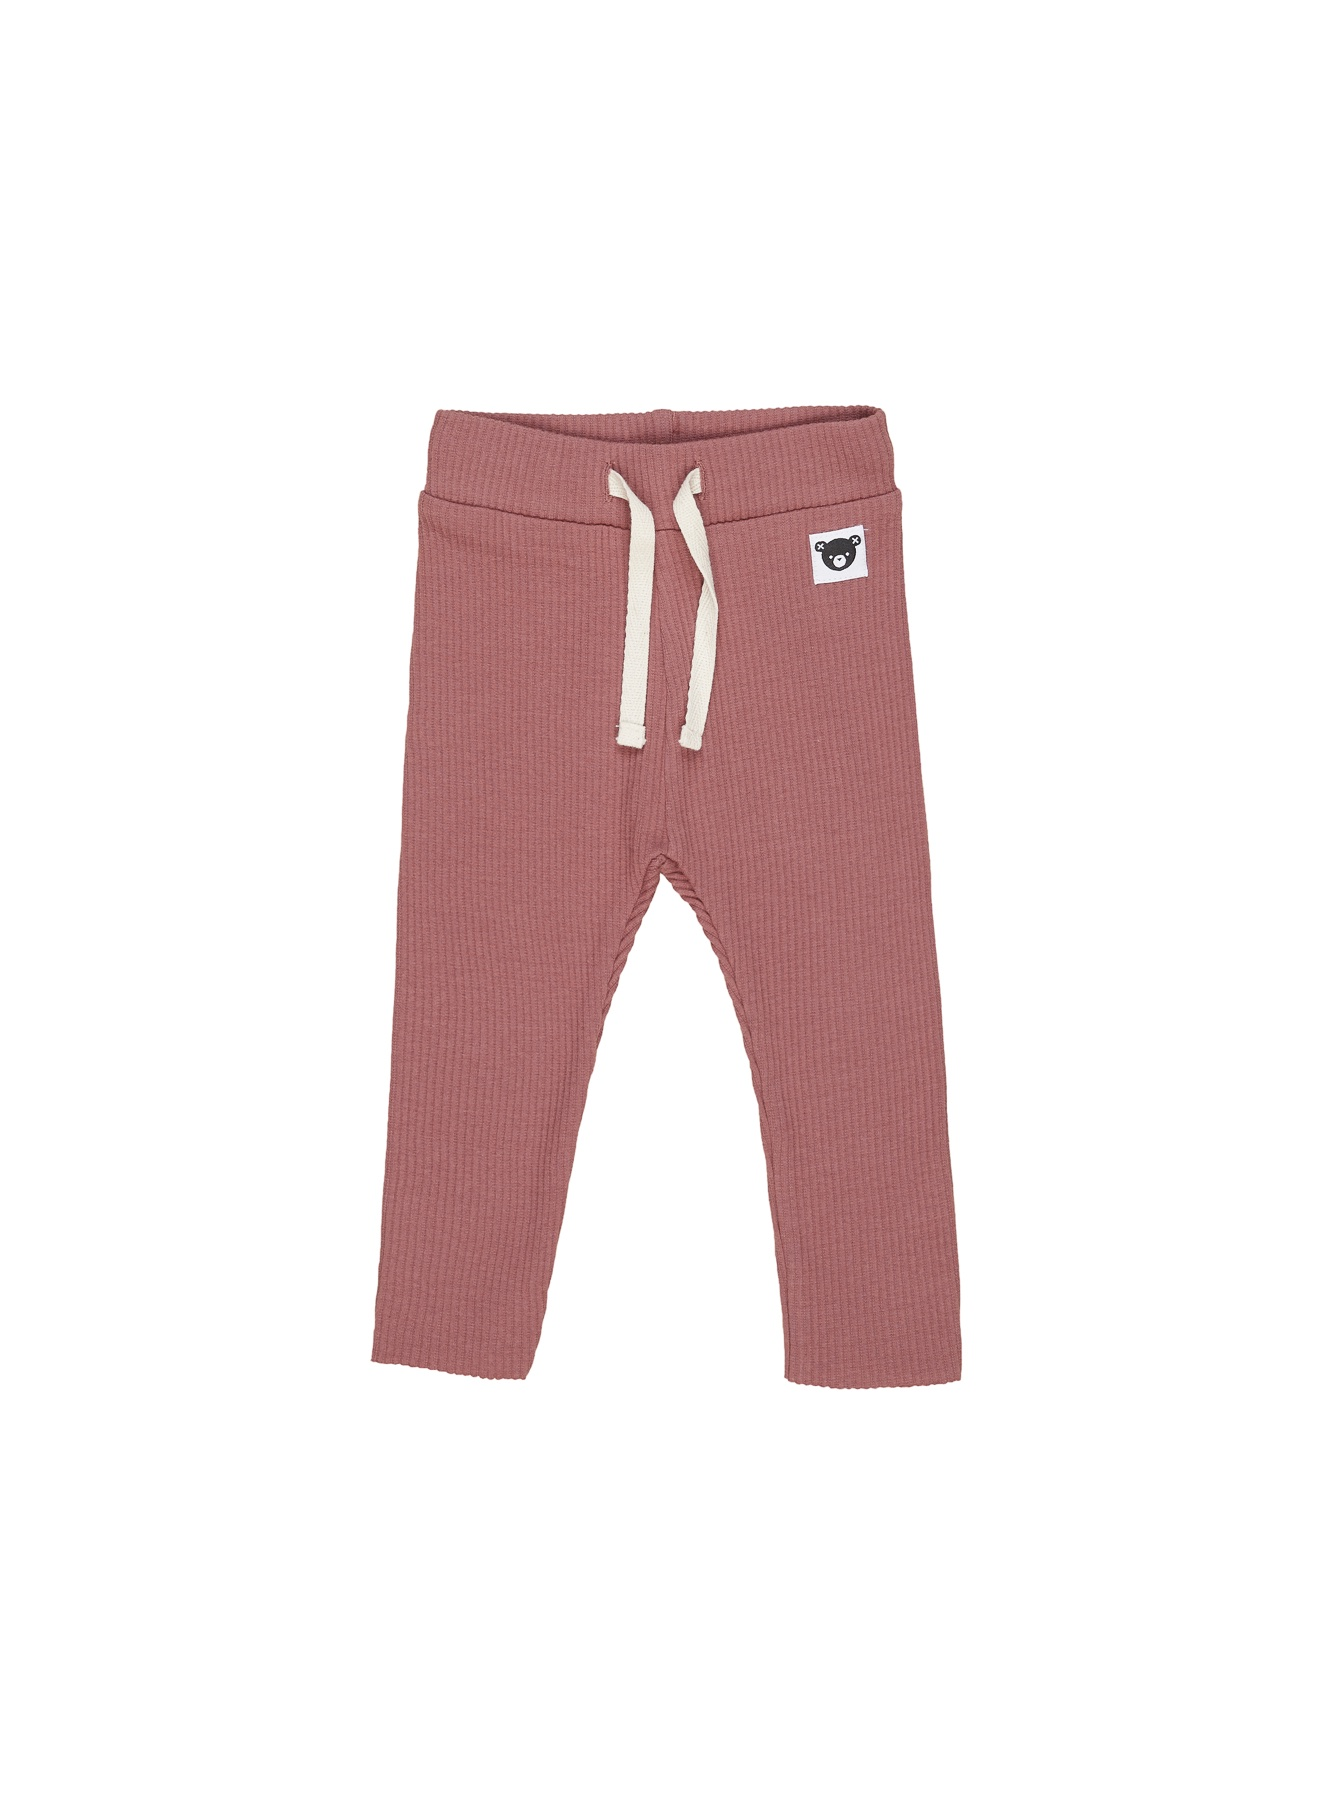 PLUM RIB LEGGINGS KID